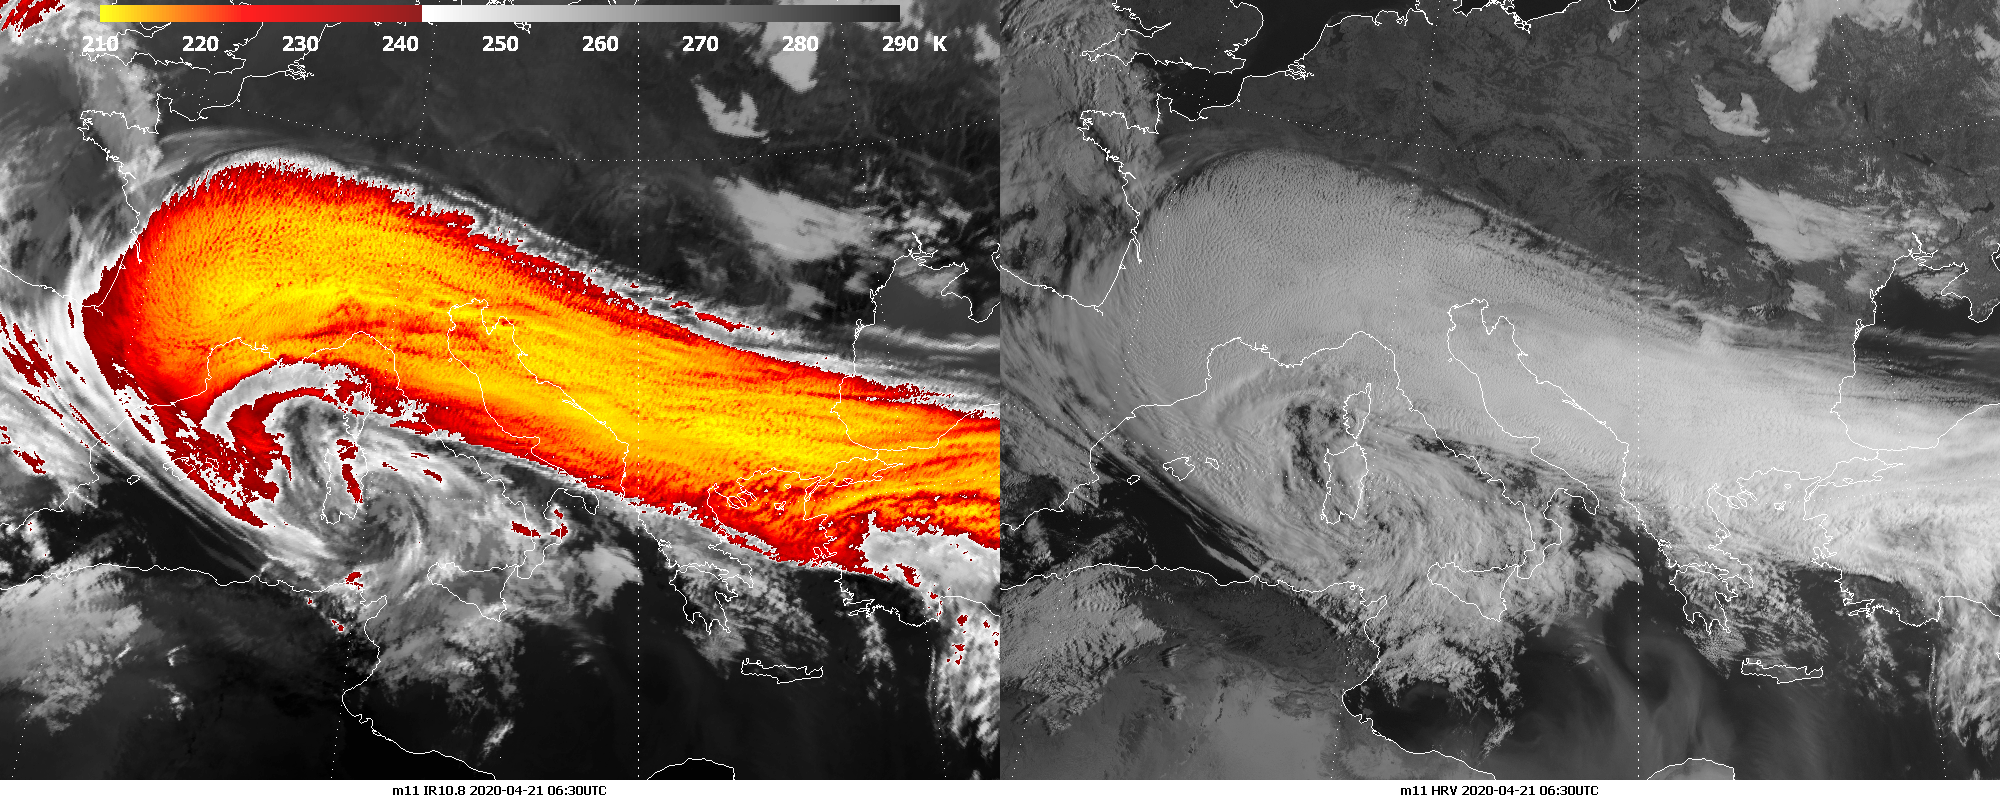 Meteosat 11 infrared (IR108) (left) and HRV (right), 21 April, 06:30 UTC